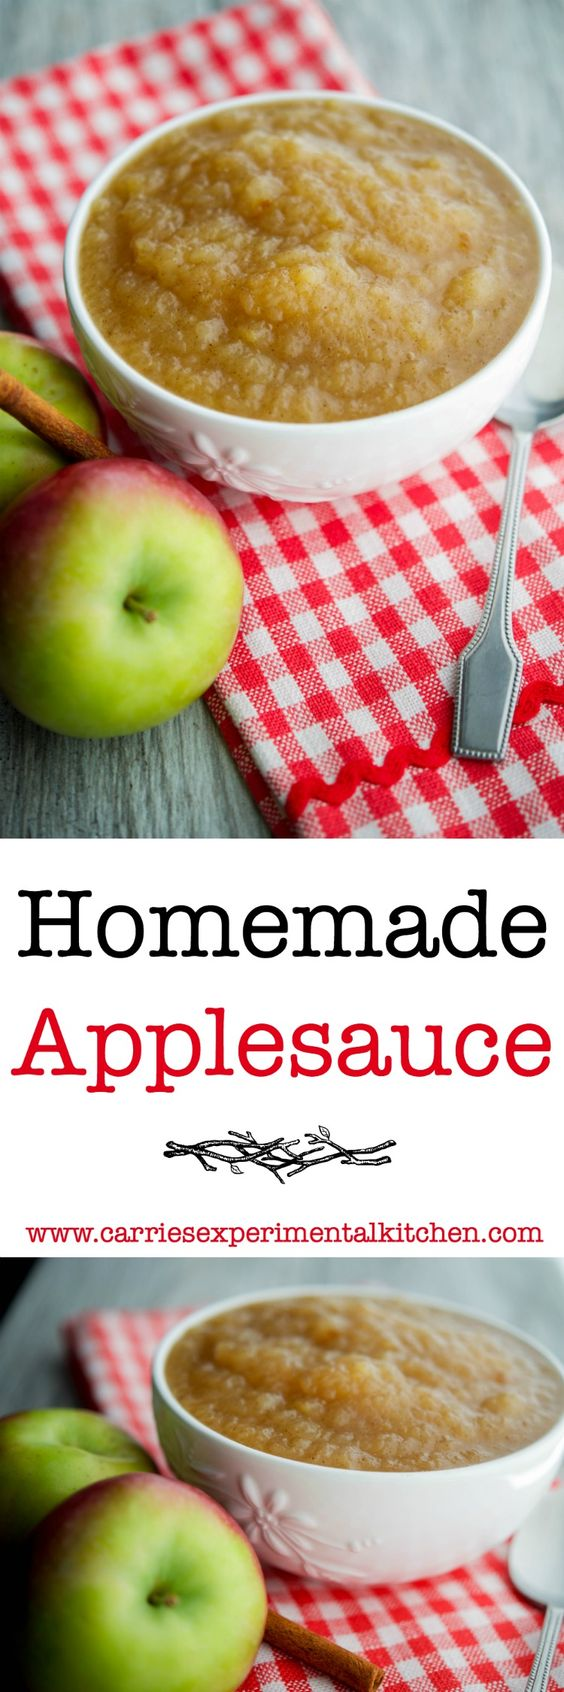 Homemade applesauce, Homemade and Apples on Pinterest